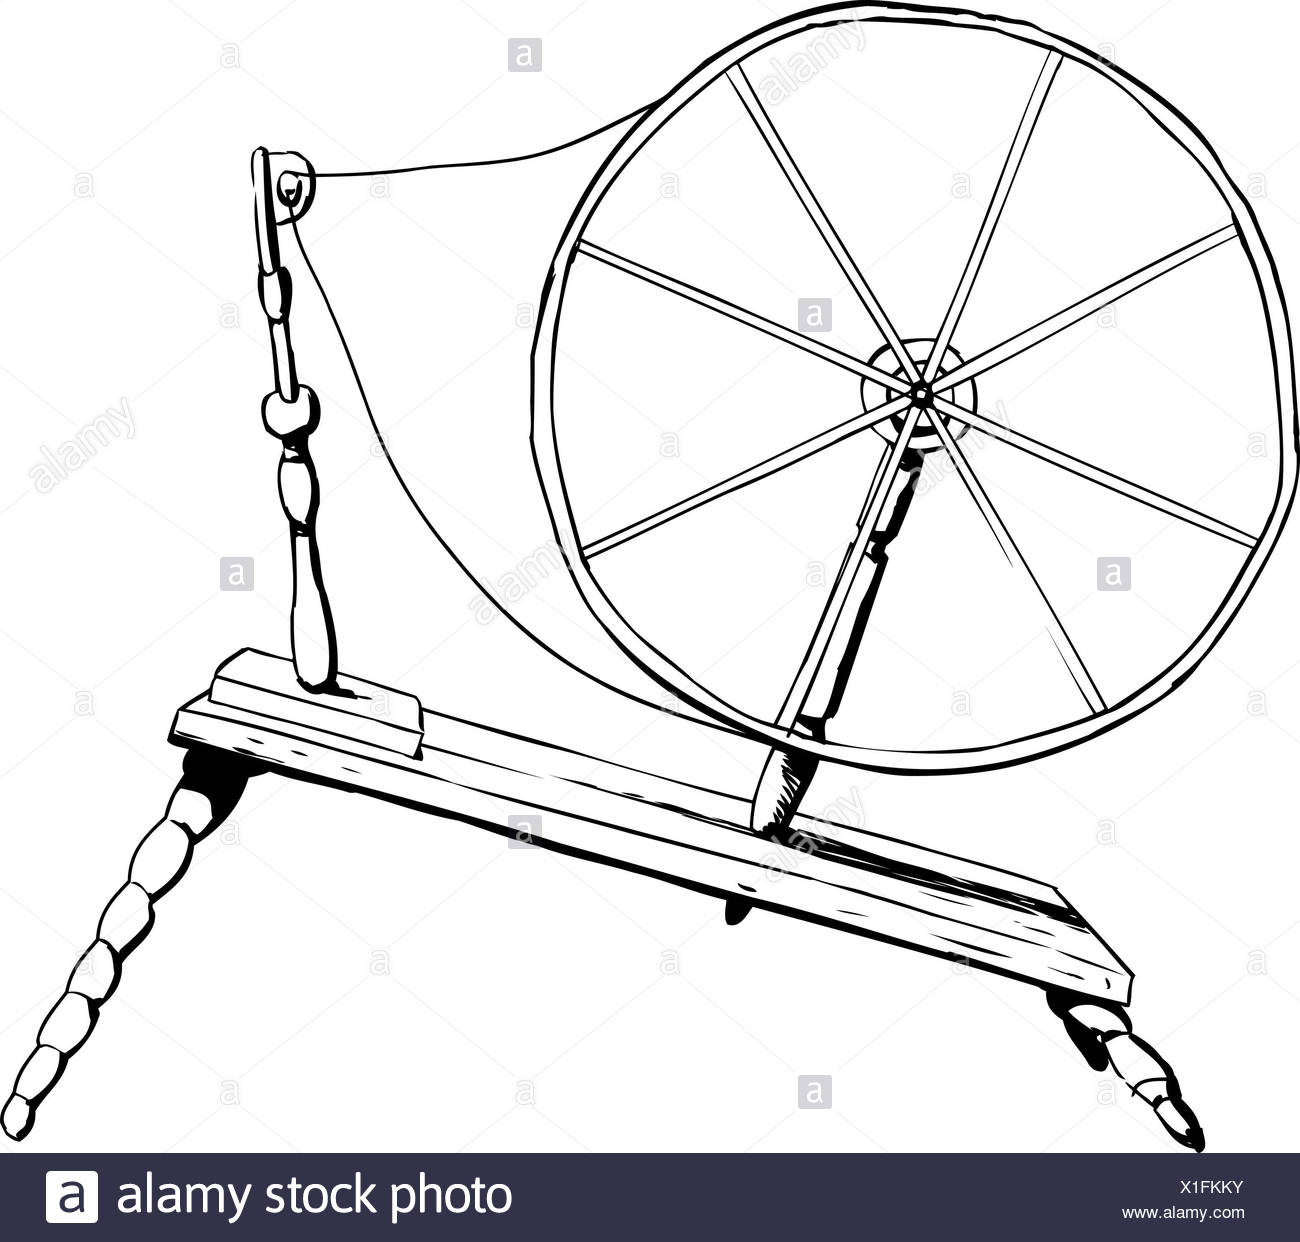 Outlined Side View On Single Old Fashioned Wooden 18th Century Era Textile Spinning Wheel Stock Photo Alamy